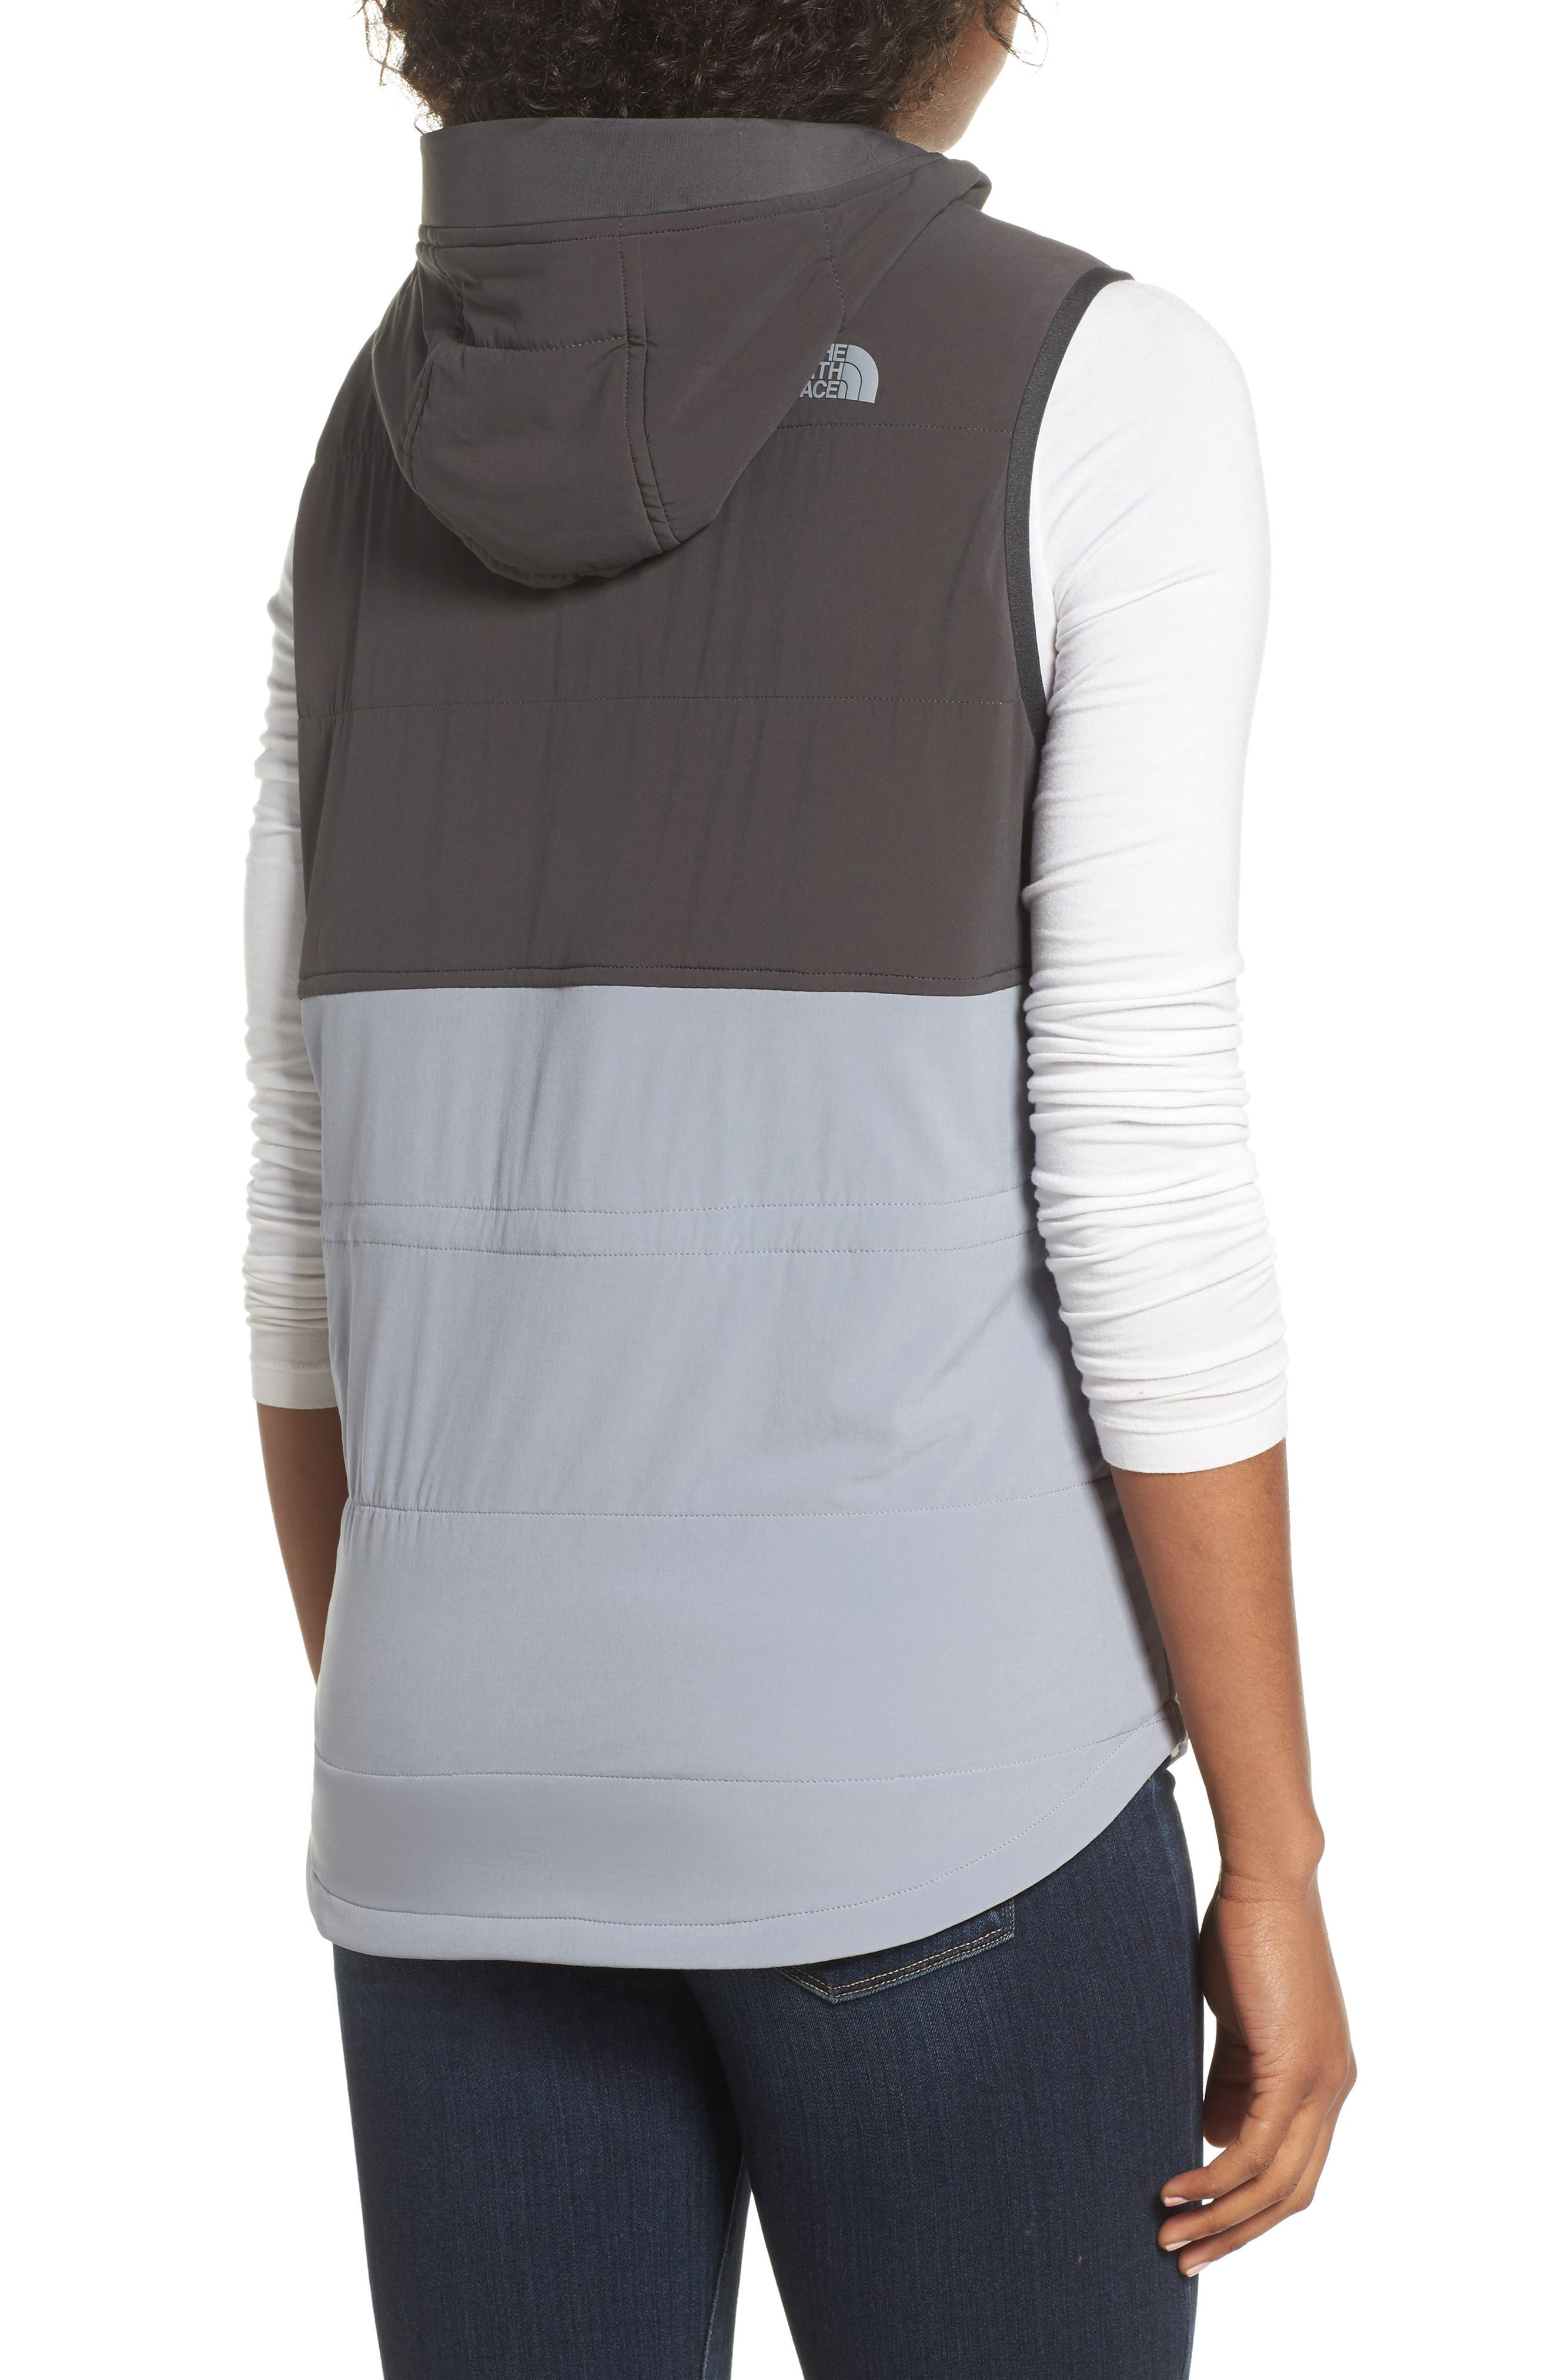 Mountain Sweatshirt Insulated Hooded Vest,                             Alternate thumbnail 7, color,